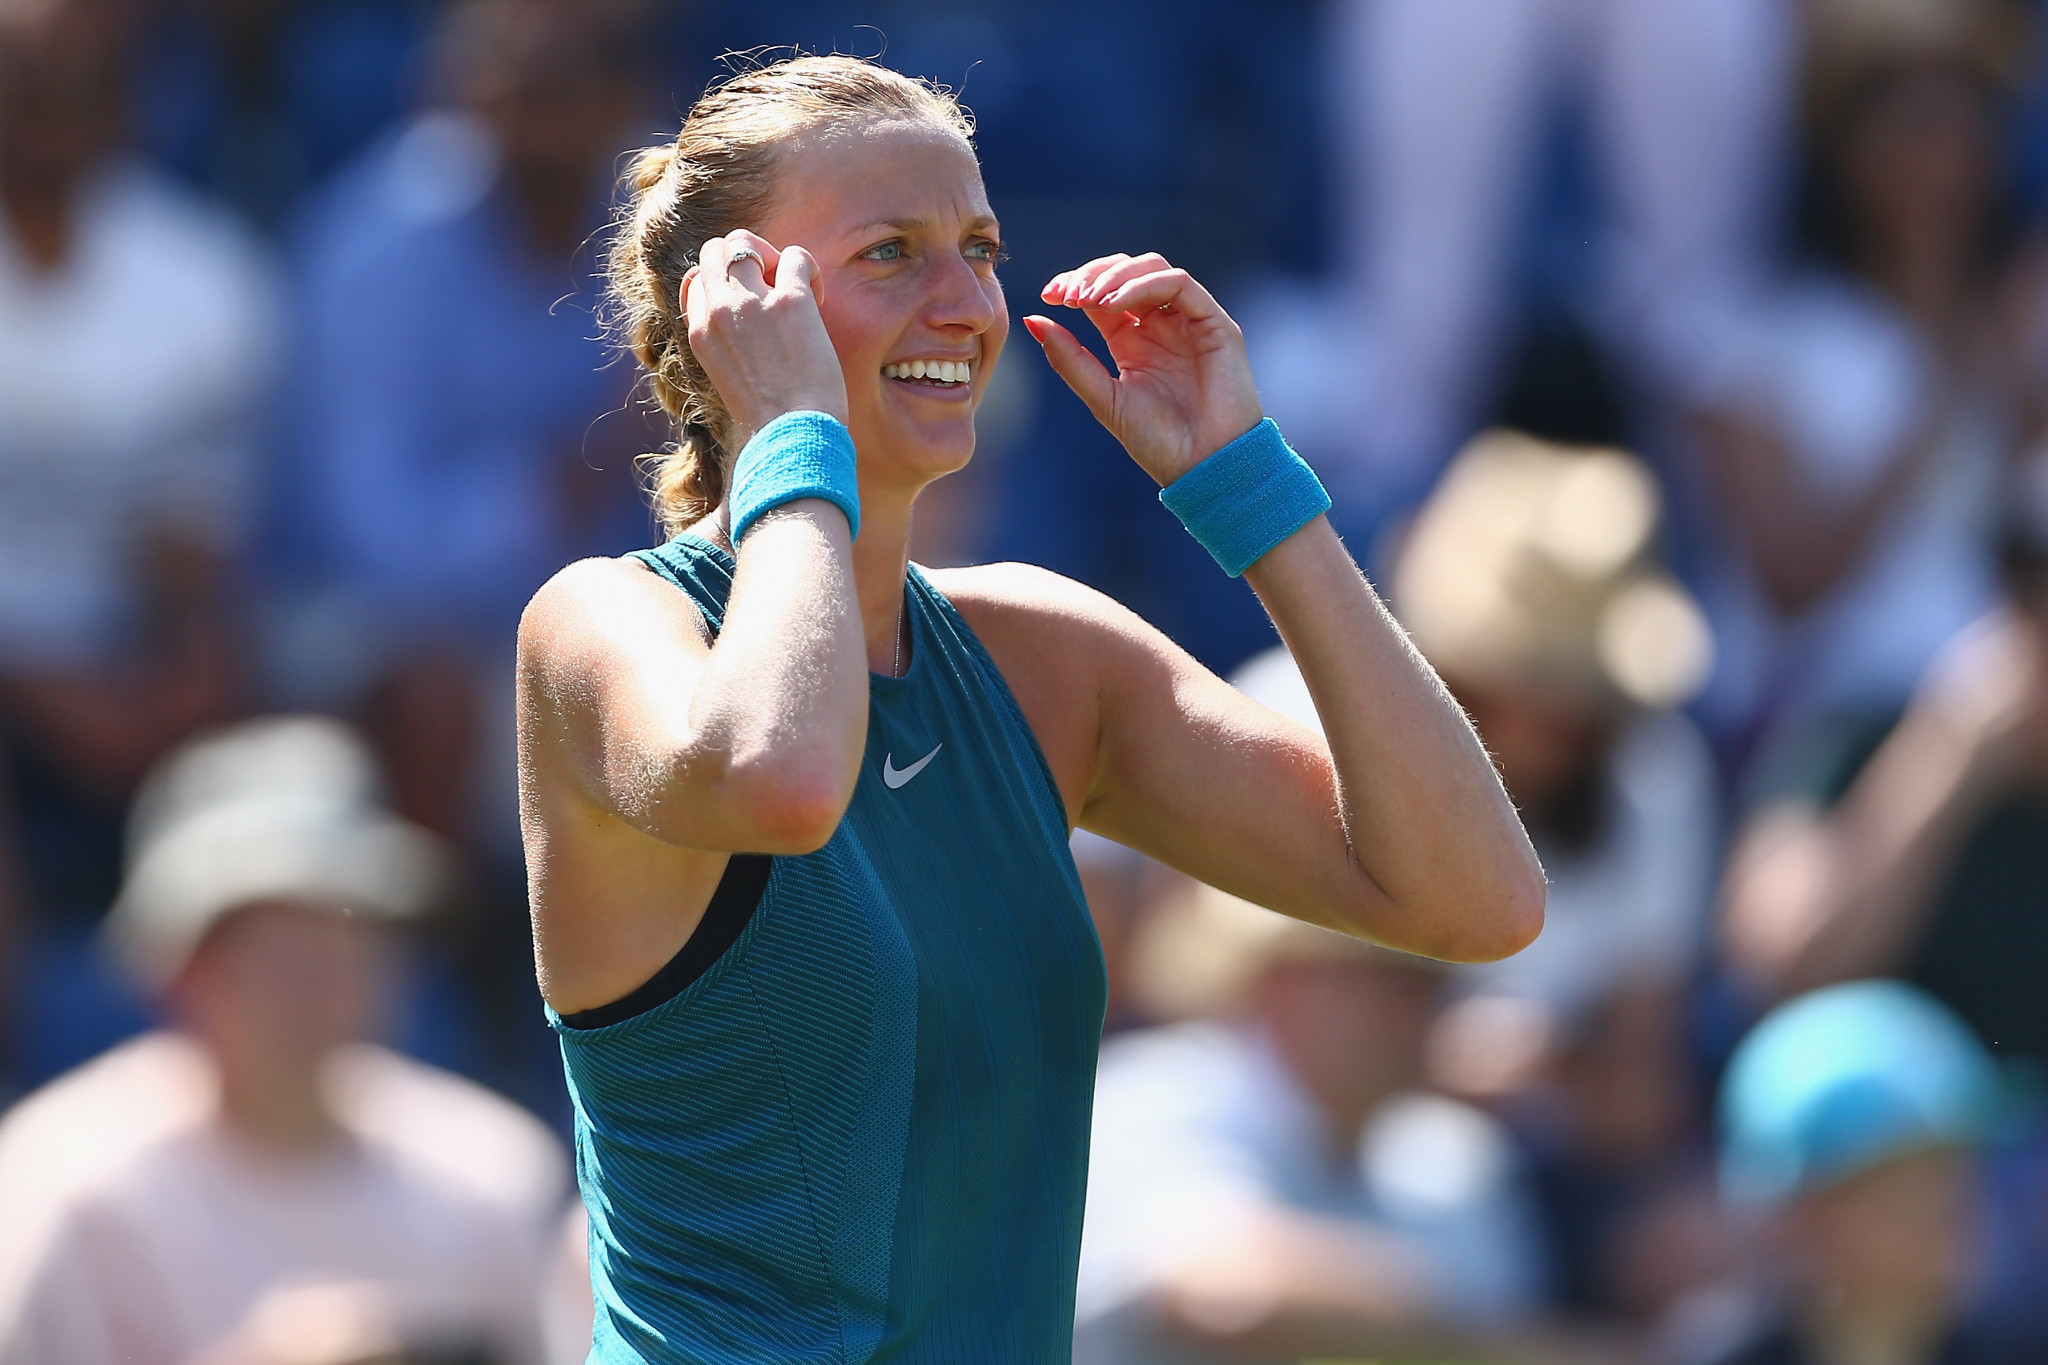 Petra Kvitová of the Czech Republic maintained her fine run of form as the two-time Wimbledon champion dispatched Kateryna Bondarenko of Ukraine to reach the third round ©Getty Images